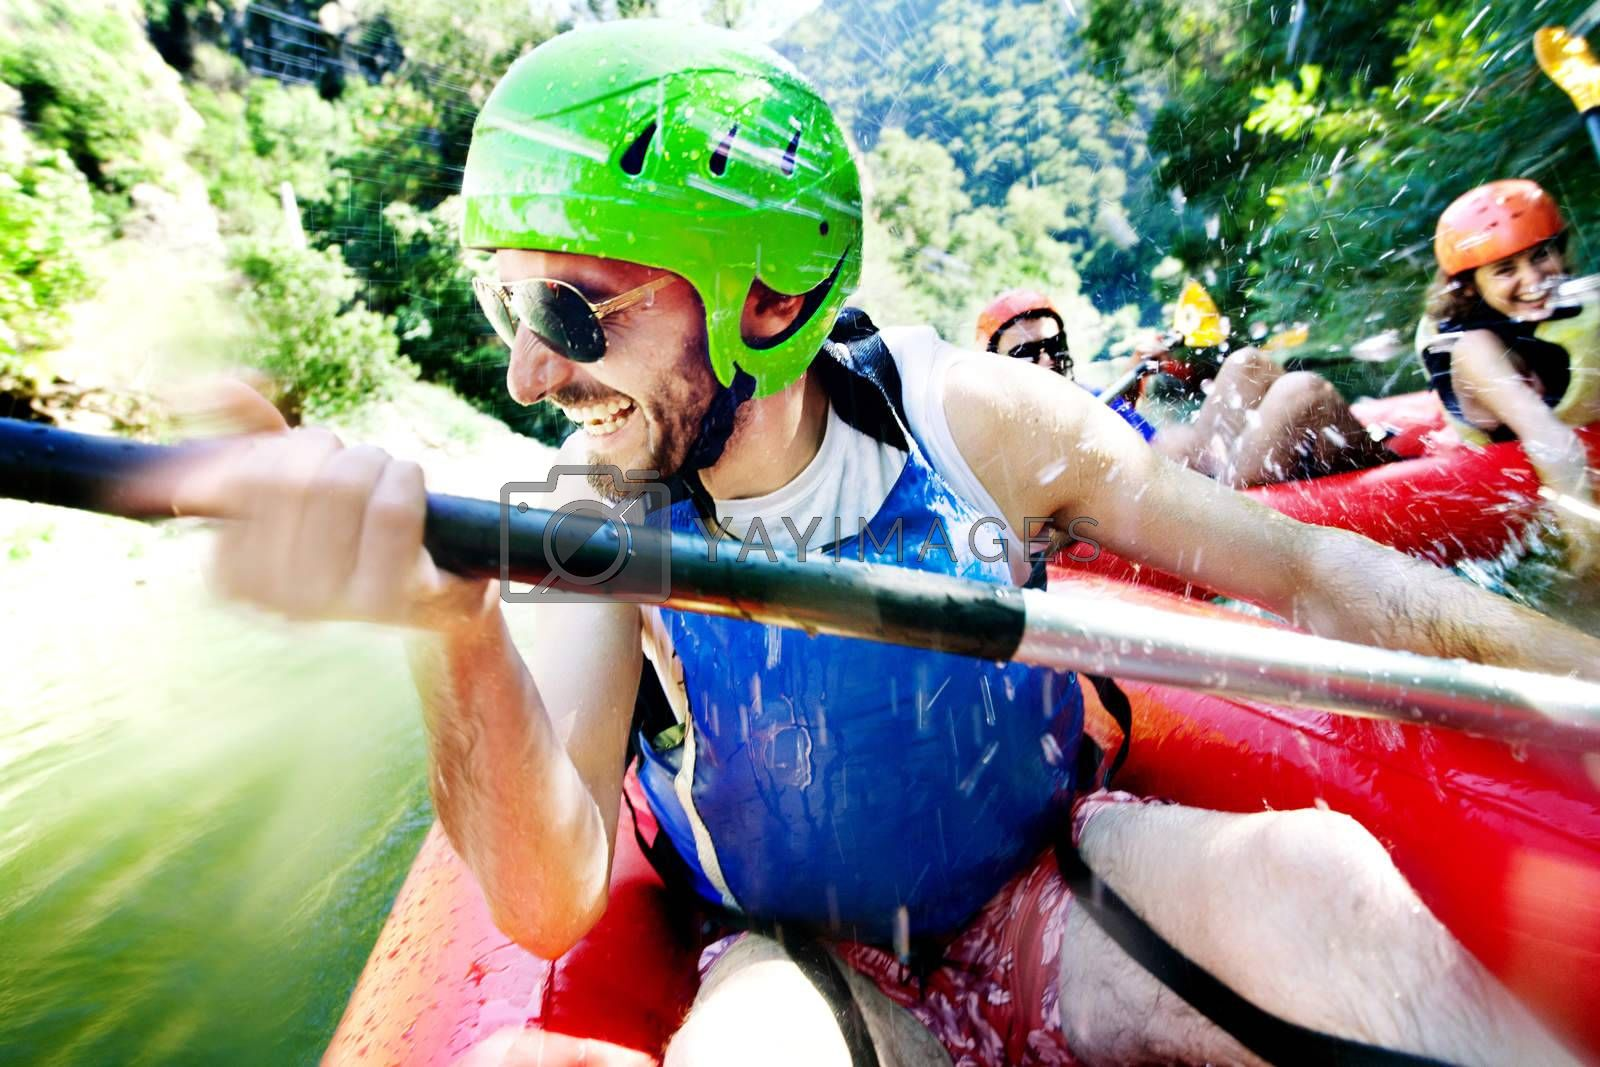 Royalty free image of rafting excitement by vilevi